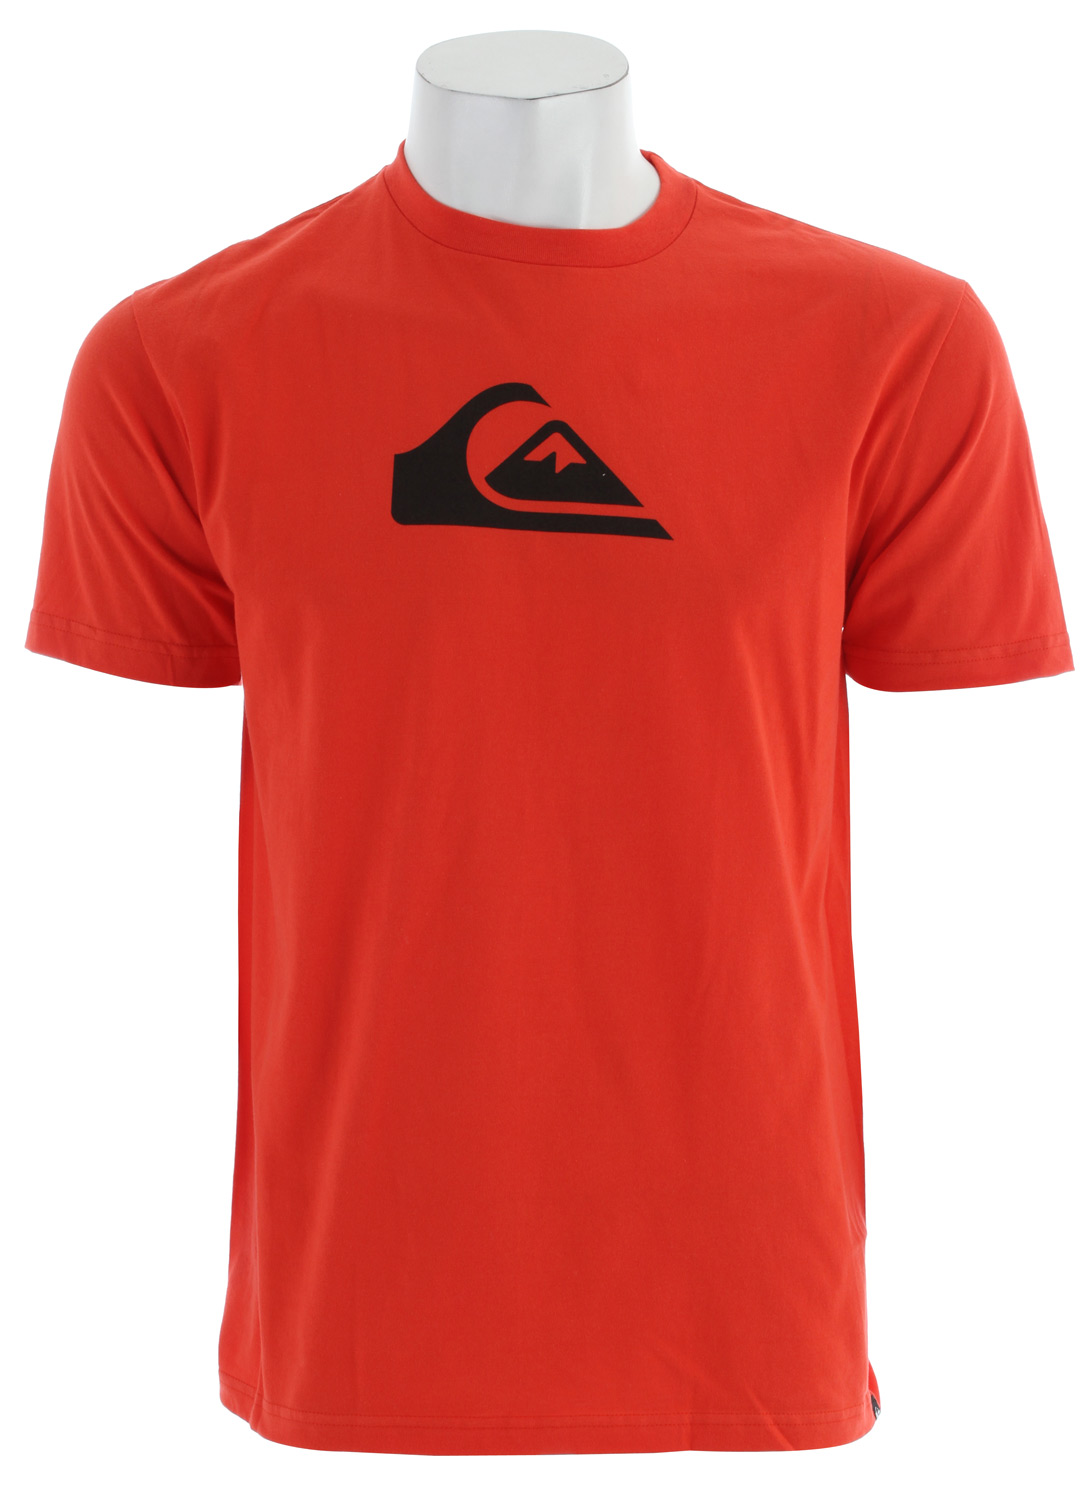 Surf The Mountain Wave classic tee says one thing and one thing well - you like mountain and waves.Key Features of The Quiksilver Mountain Wave T-Shirt: Slim Fit Crew Neck Short Sleeve ringspun combed jersey SOLIDS: 100% cotton HEATHERS: 50% cotton 50% polyester - $14.95